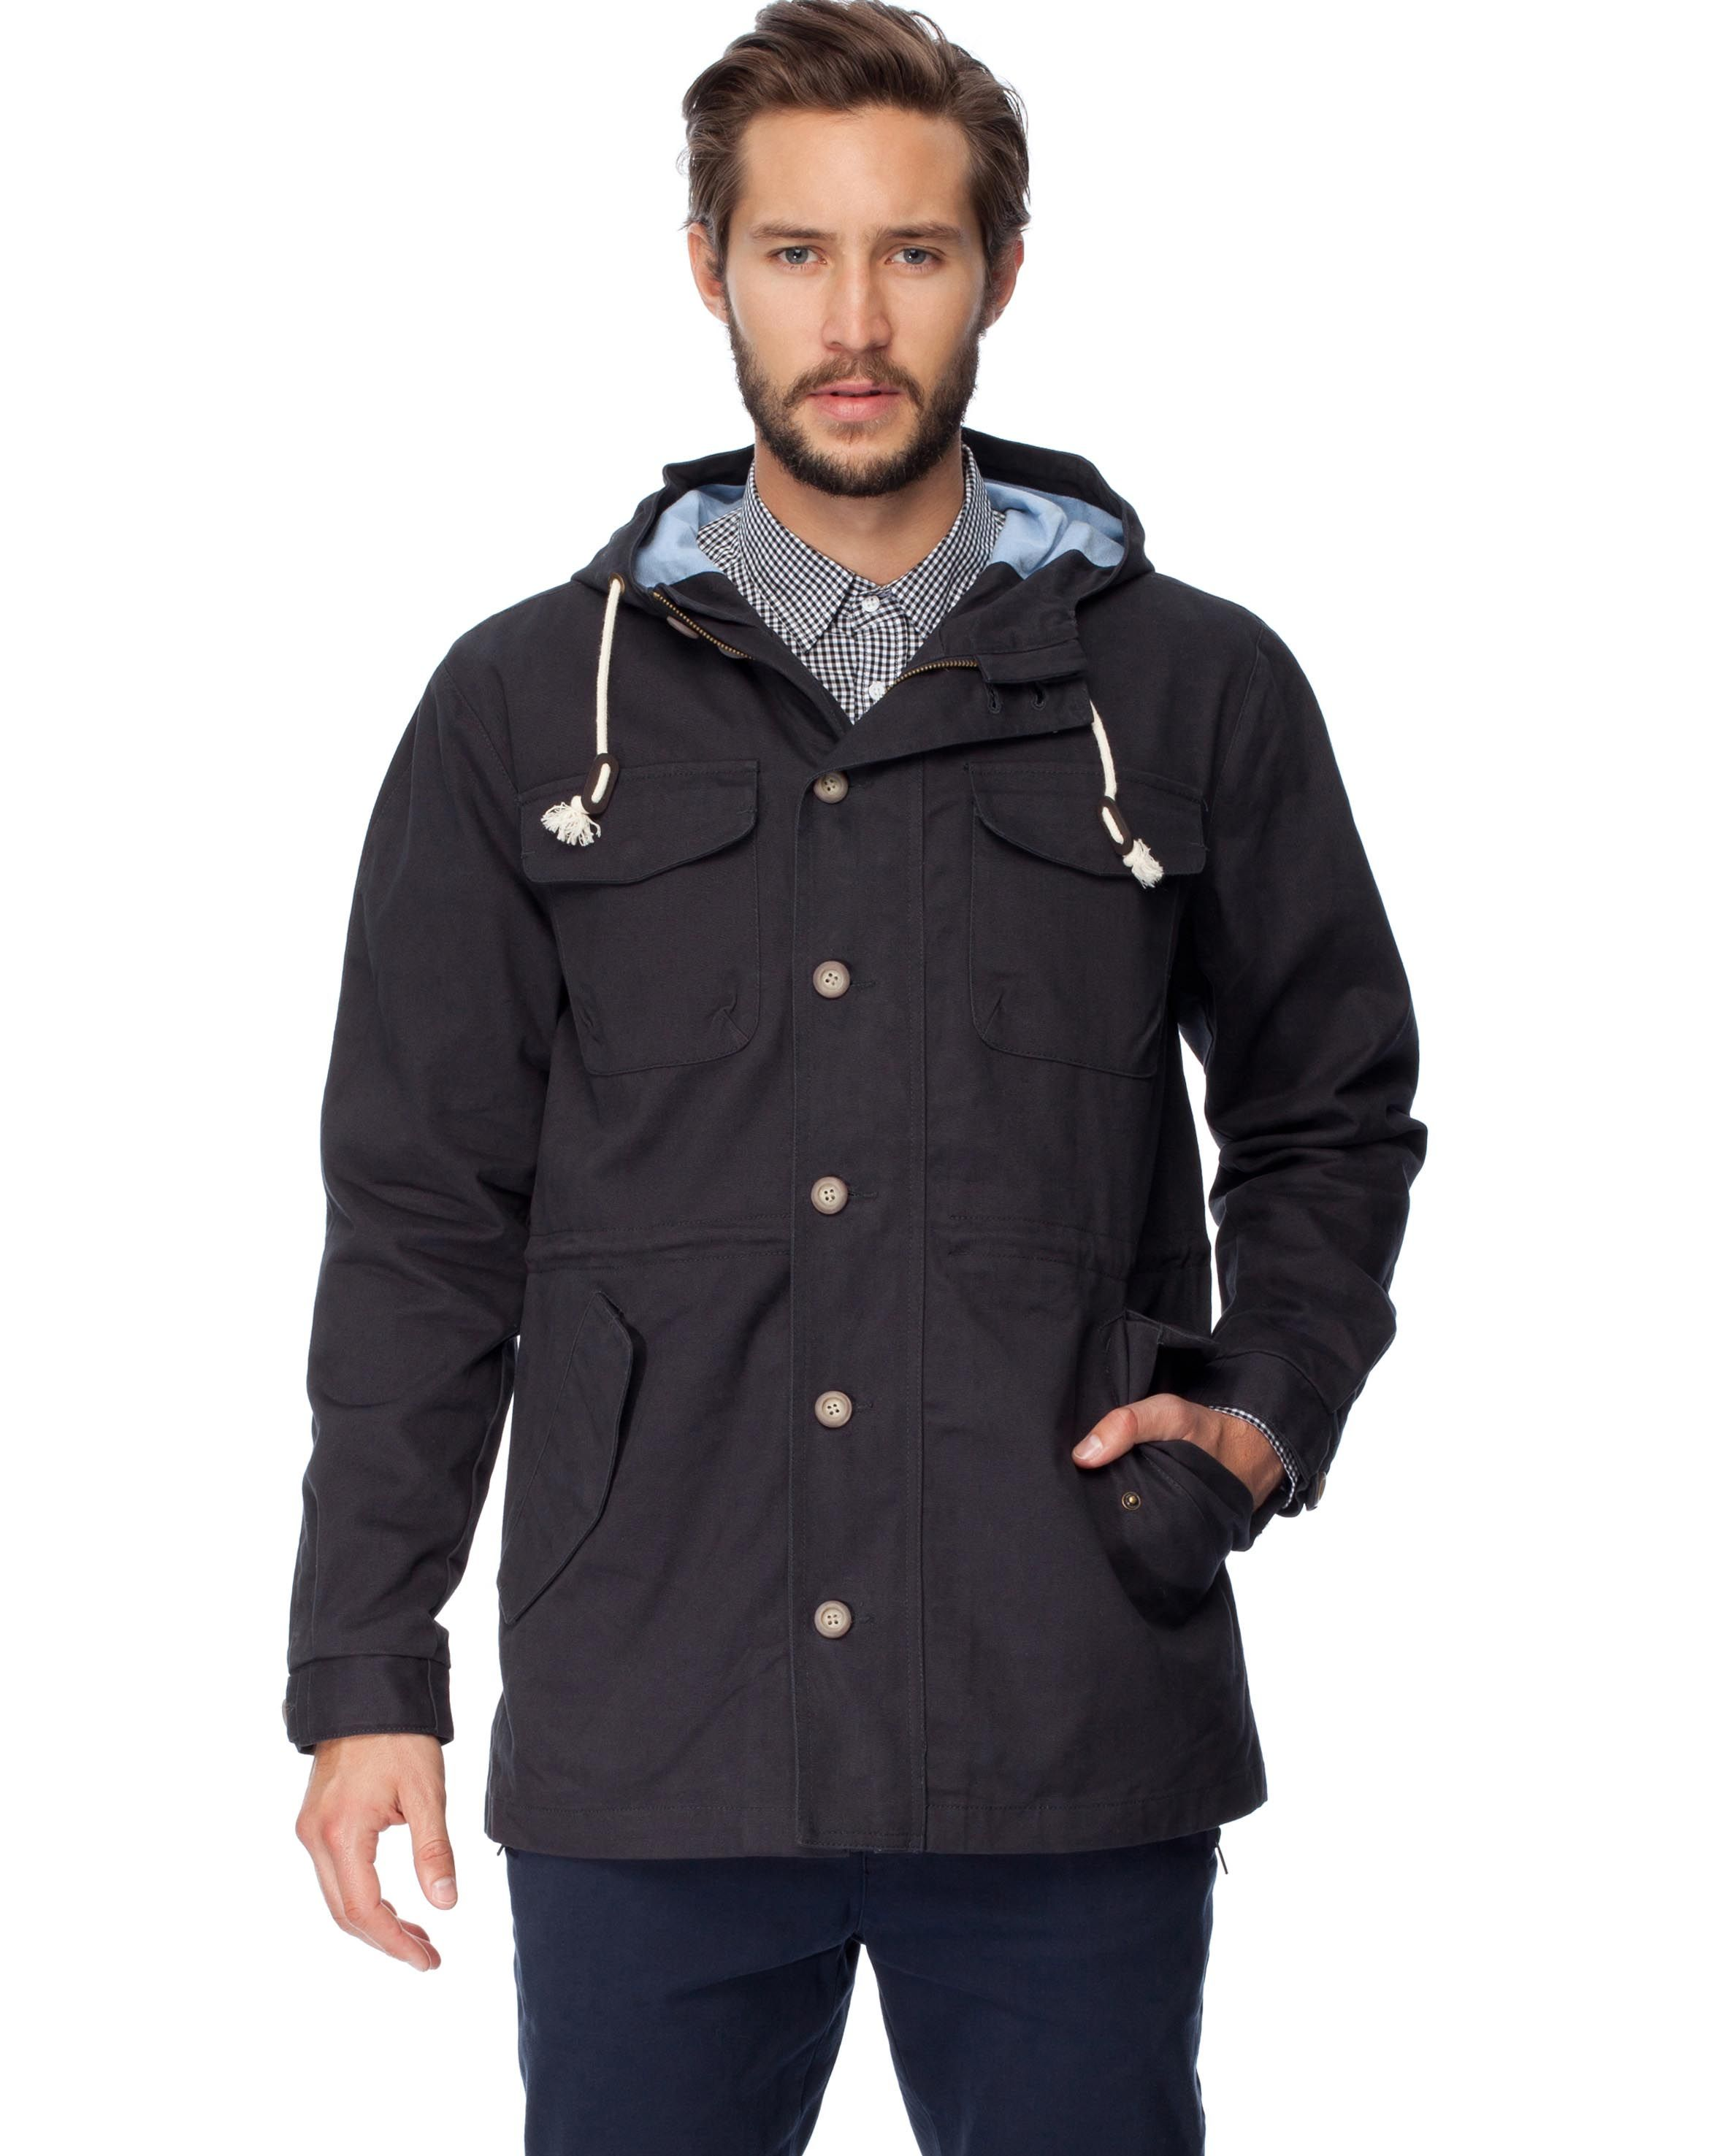 Summit Jacket by Assembly Online | THE ICONIC | AustraliaSummit Jacket by Assembly Online | THE ICONIC | Australia